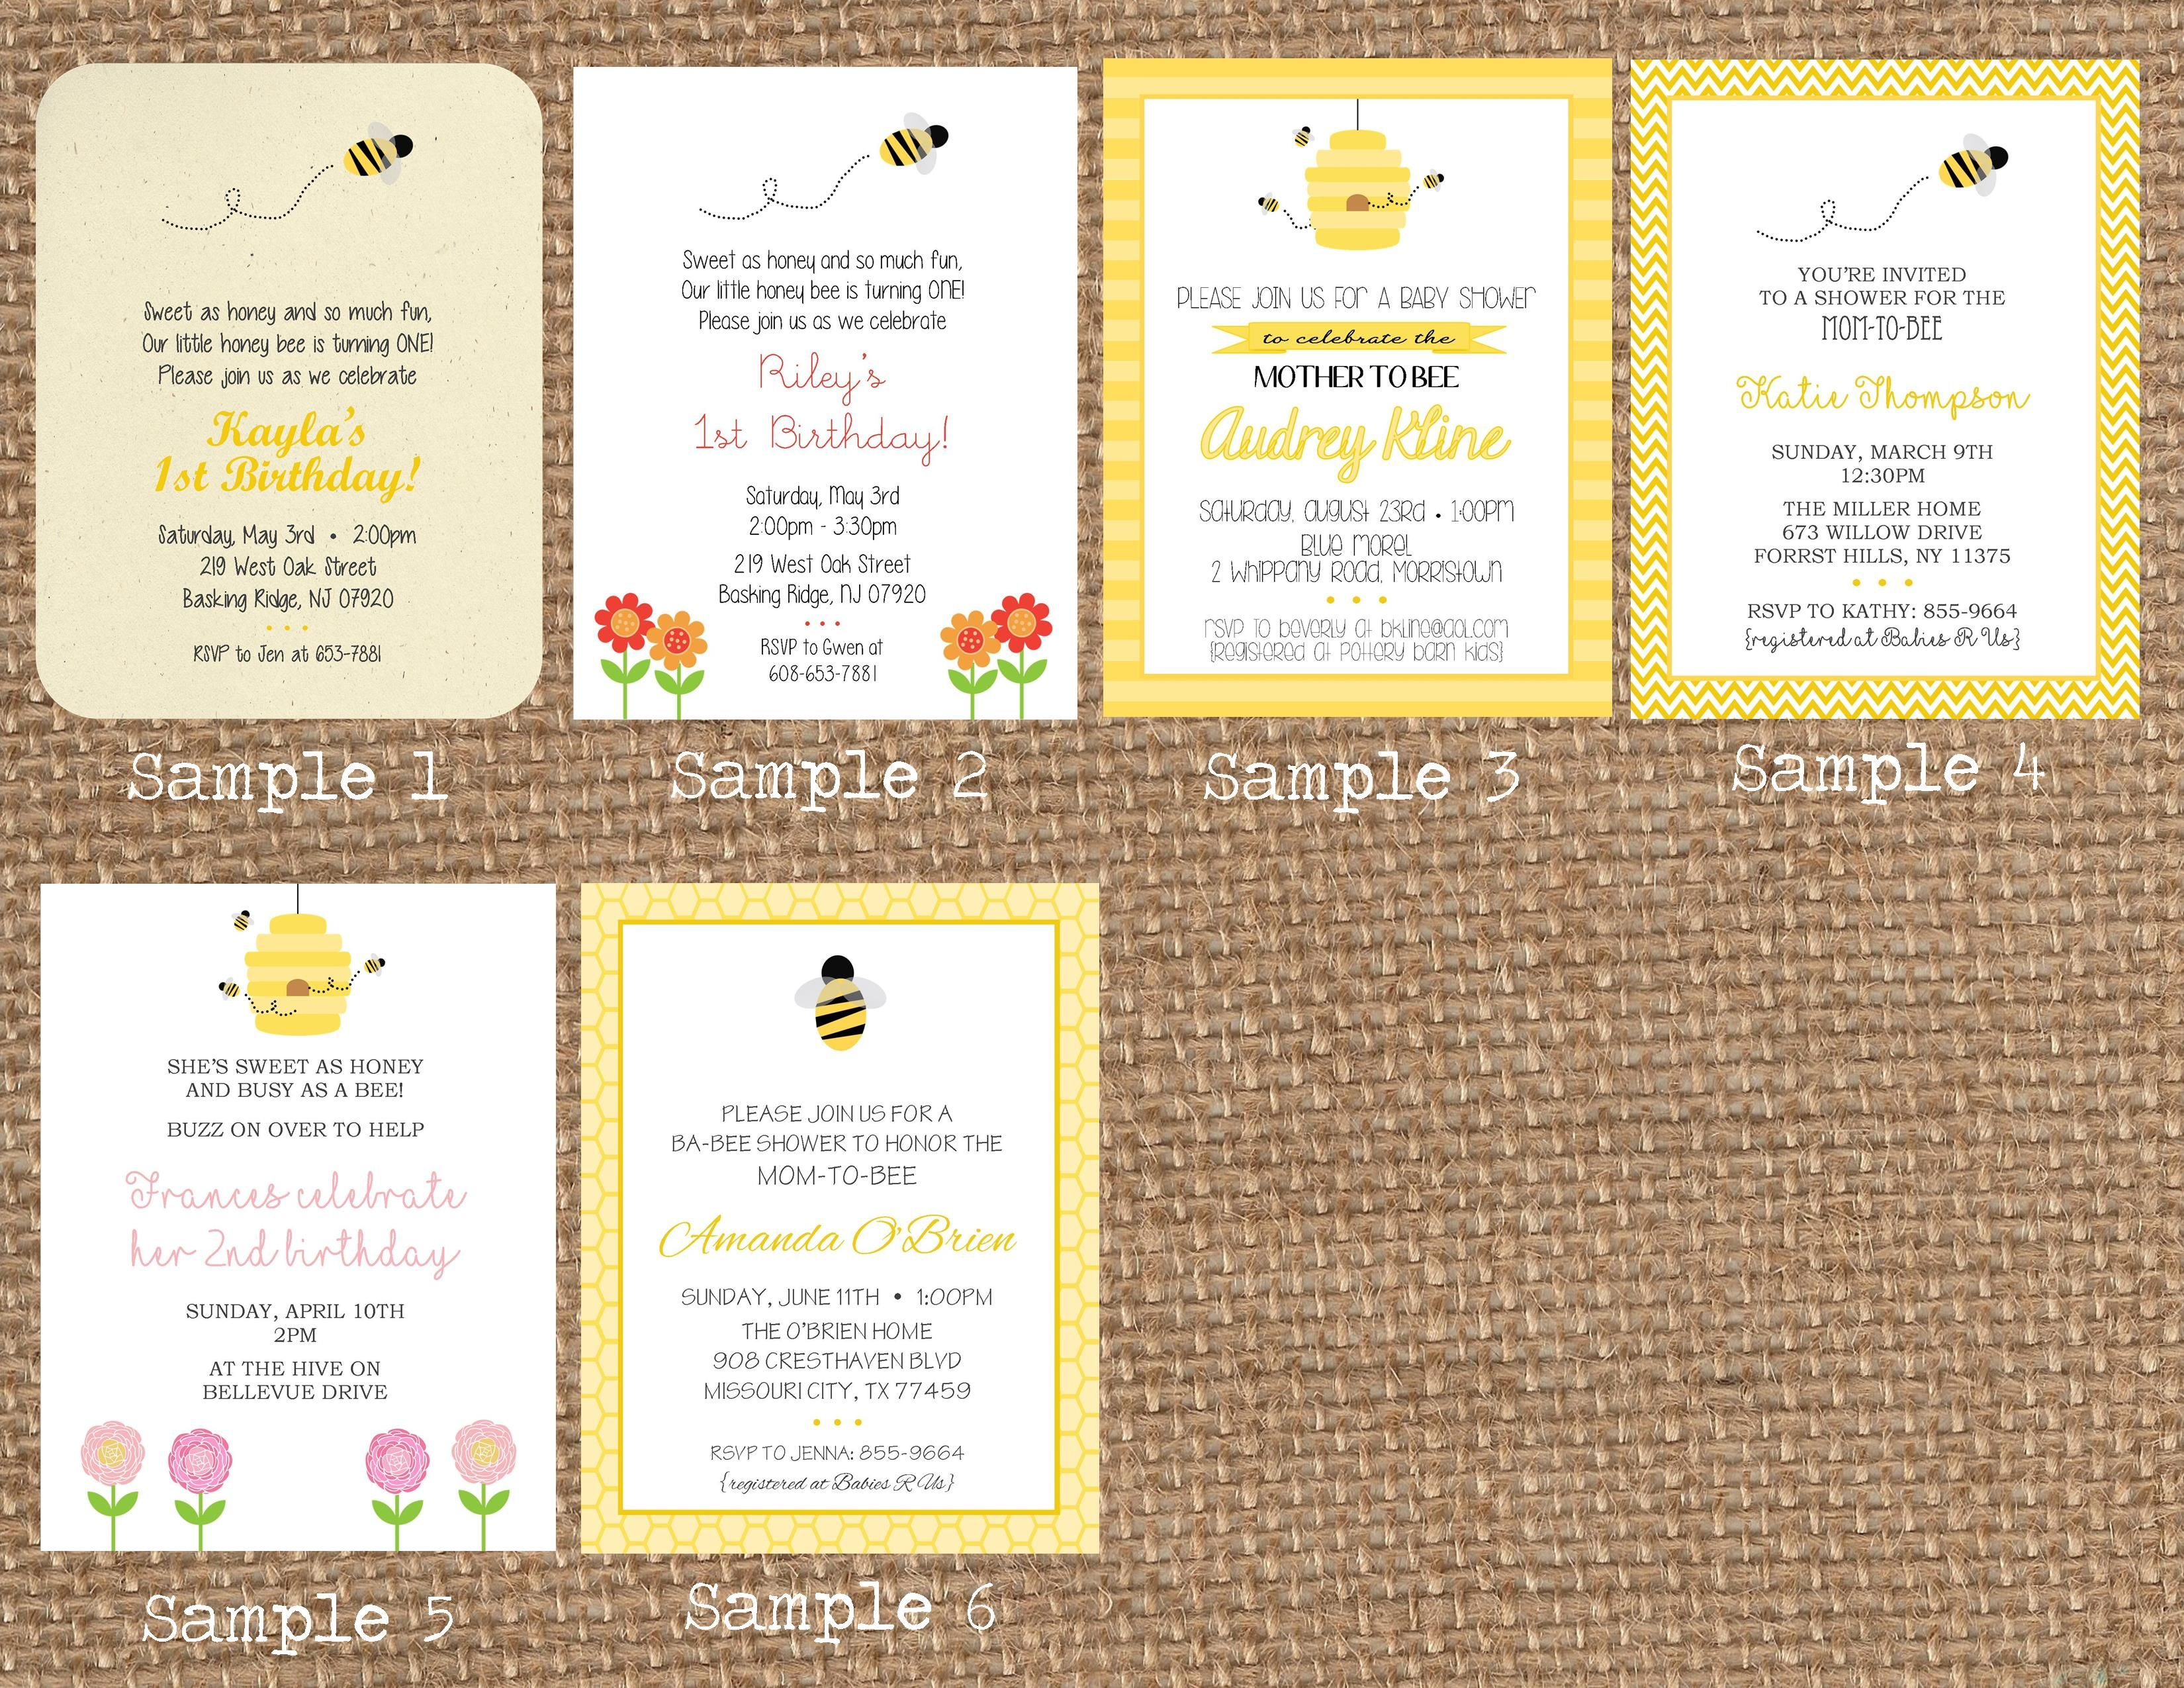 Bee Invitation, Bee + Flowers Invitation, Bee Hive Invitation, Queen Bee Invitation, Bee Good Invitation, Bee Happy Invitation: https://www.etsy.com/listing/176992292/honey-bee-flowers-bee-good-birthday-baby?ref=listing-shop-header-1